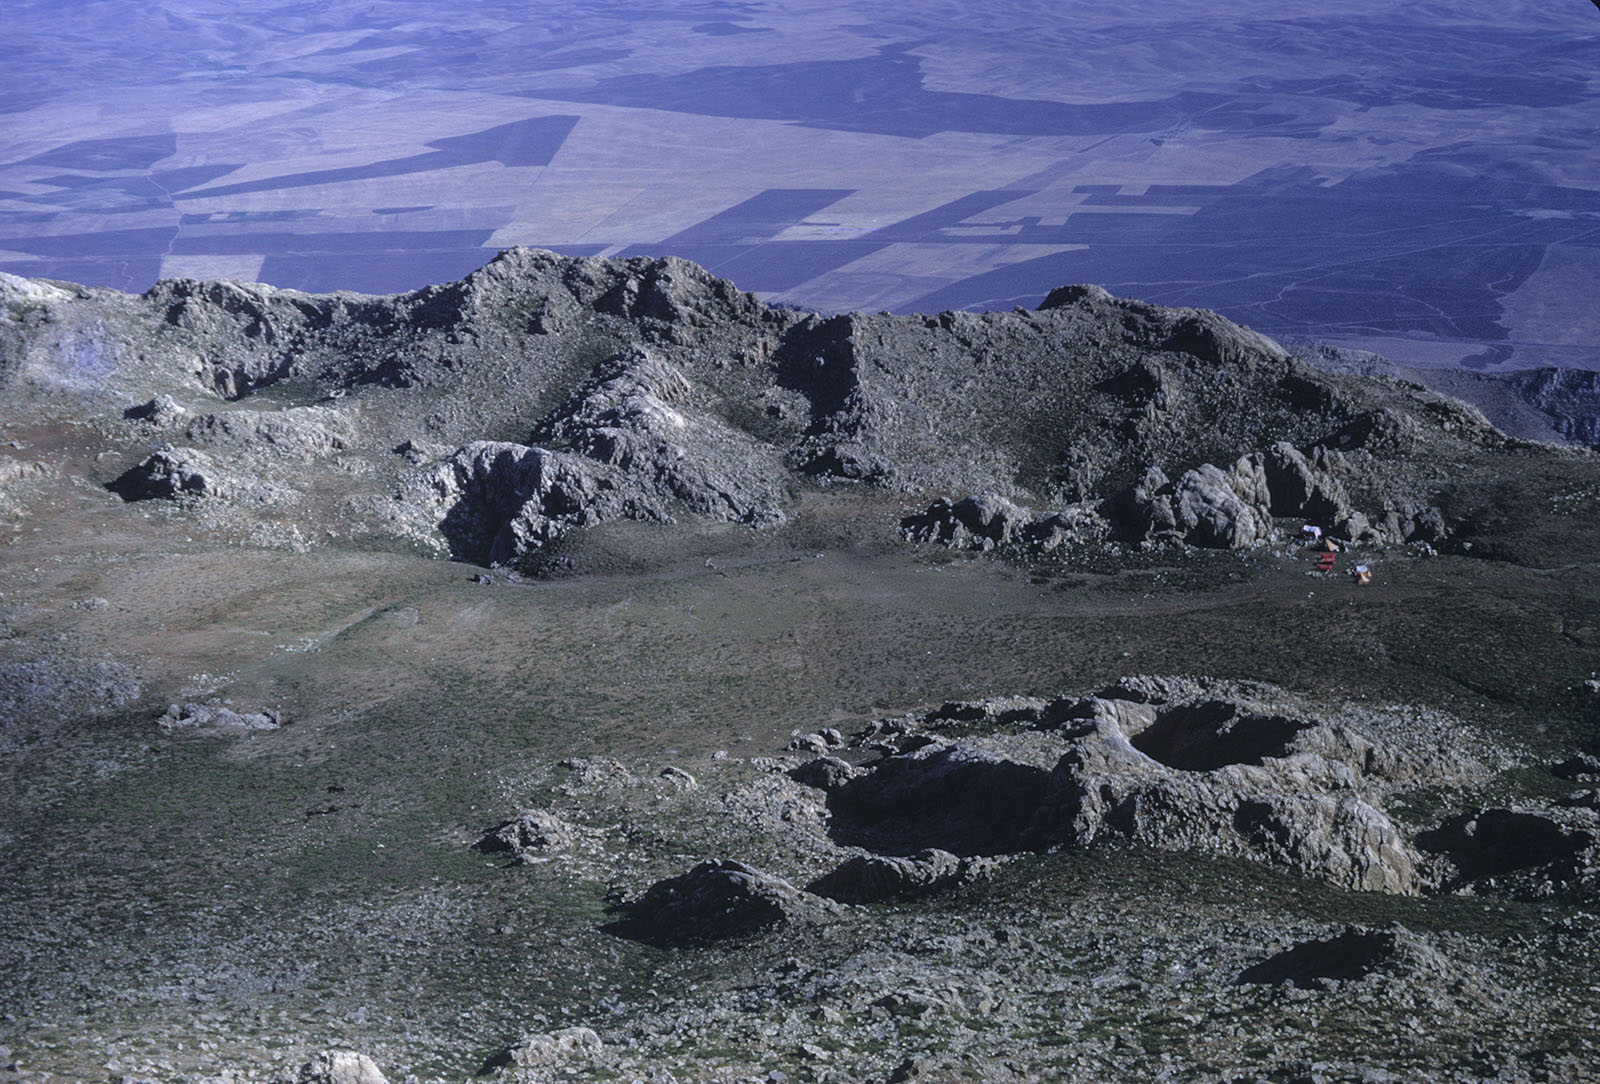 The Parau basin, seen from top of mountain, camp on far right (Tony Waltham)